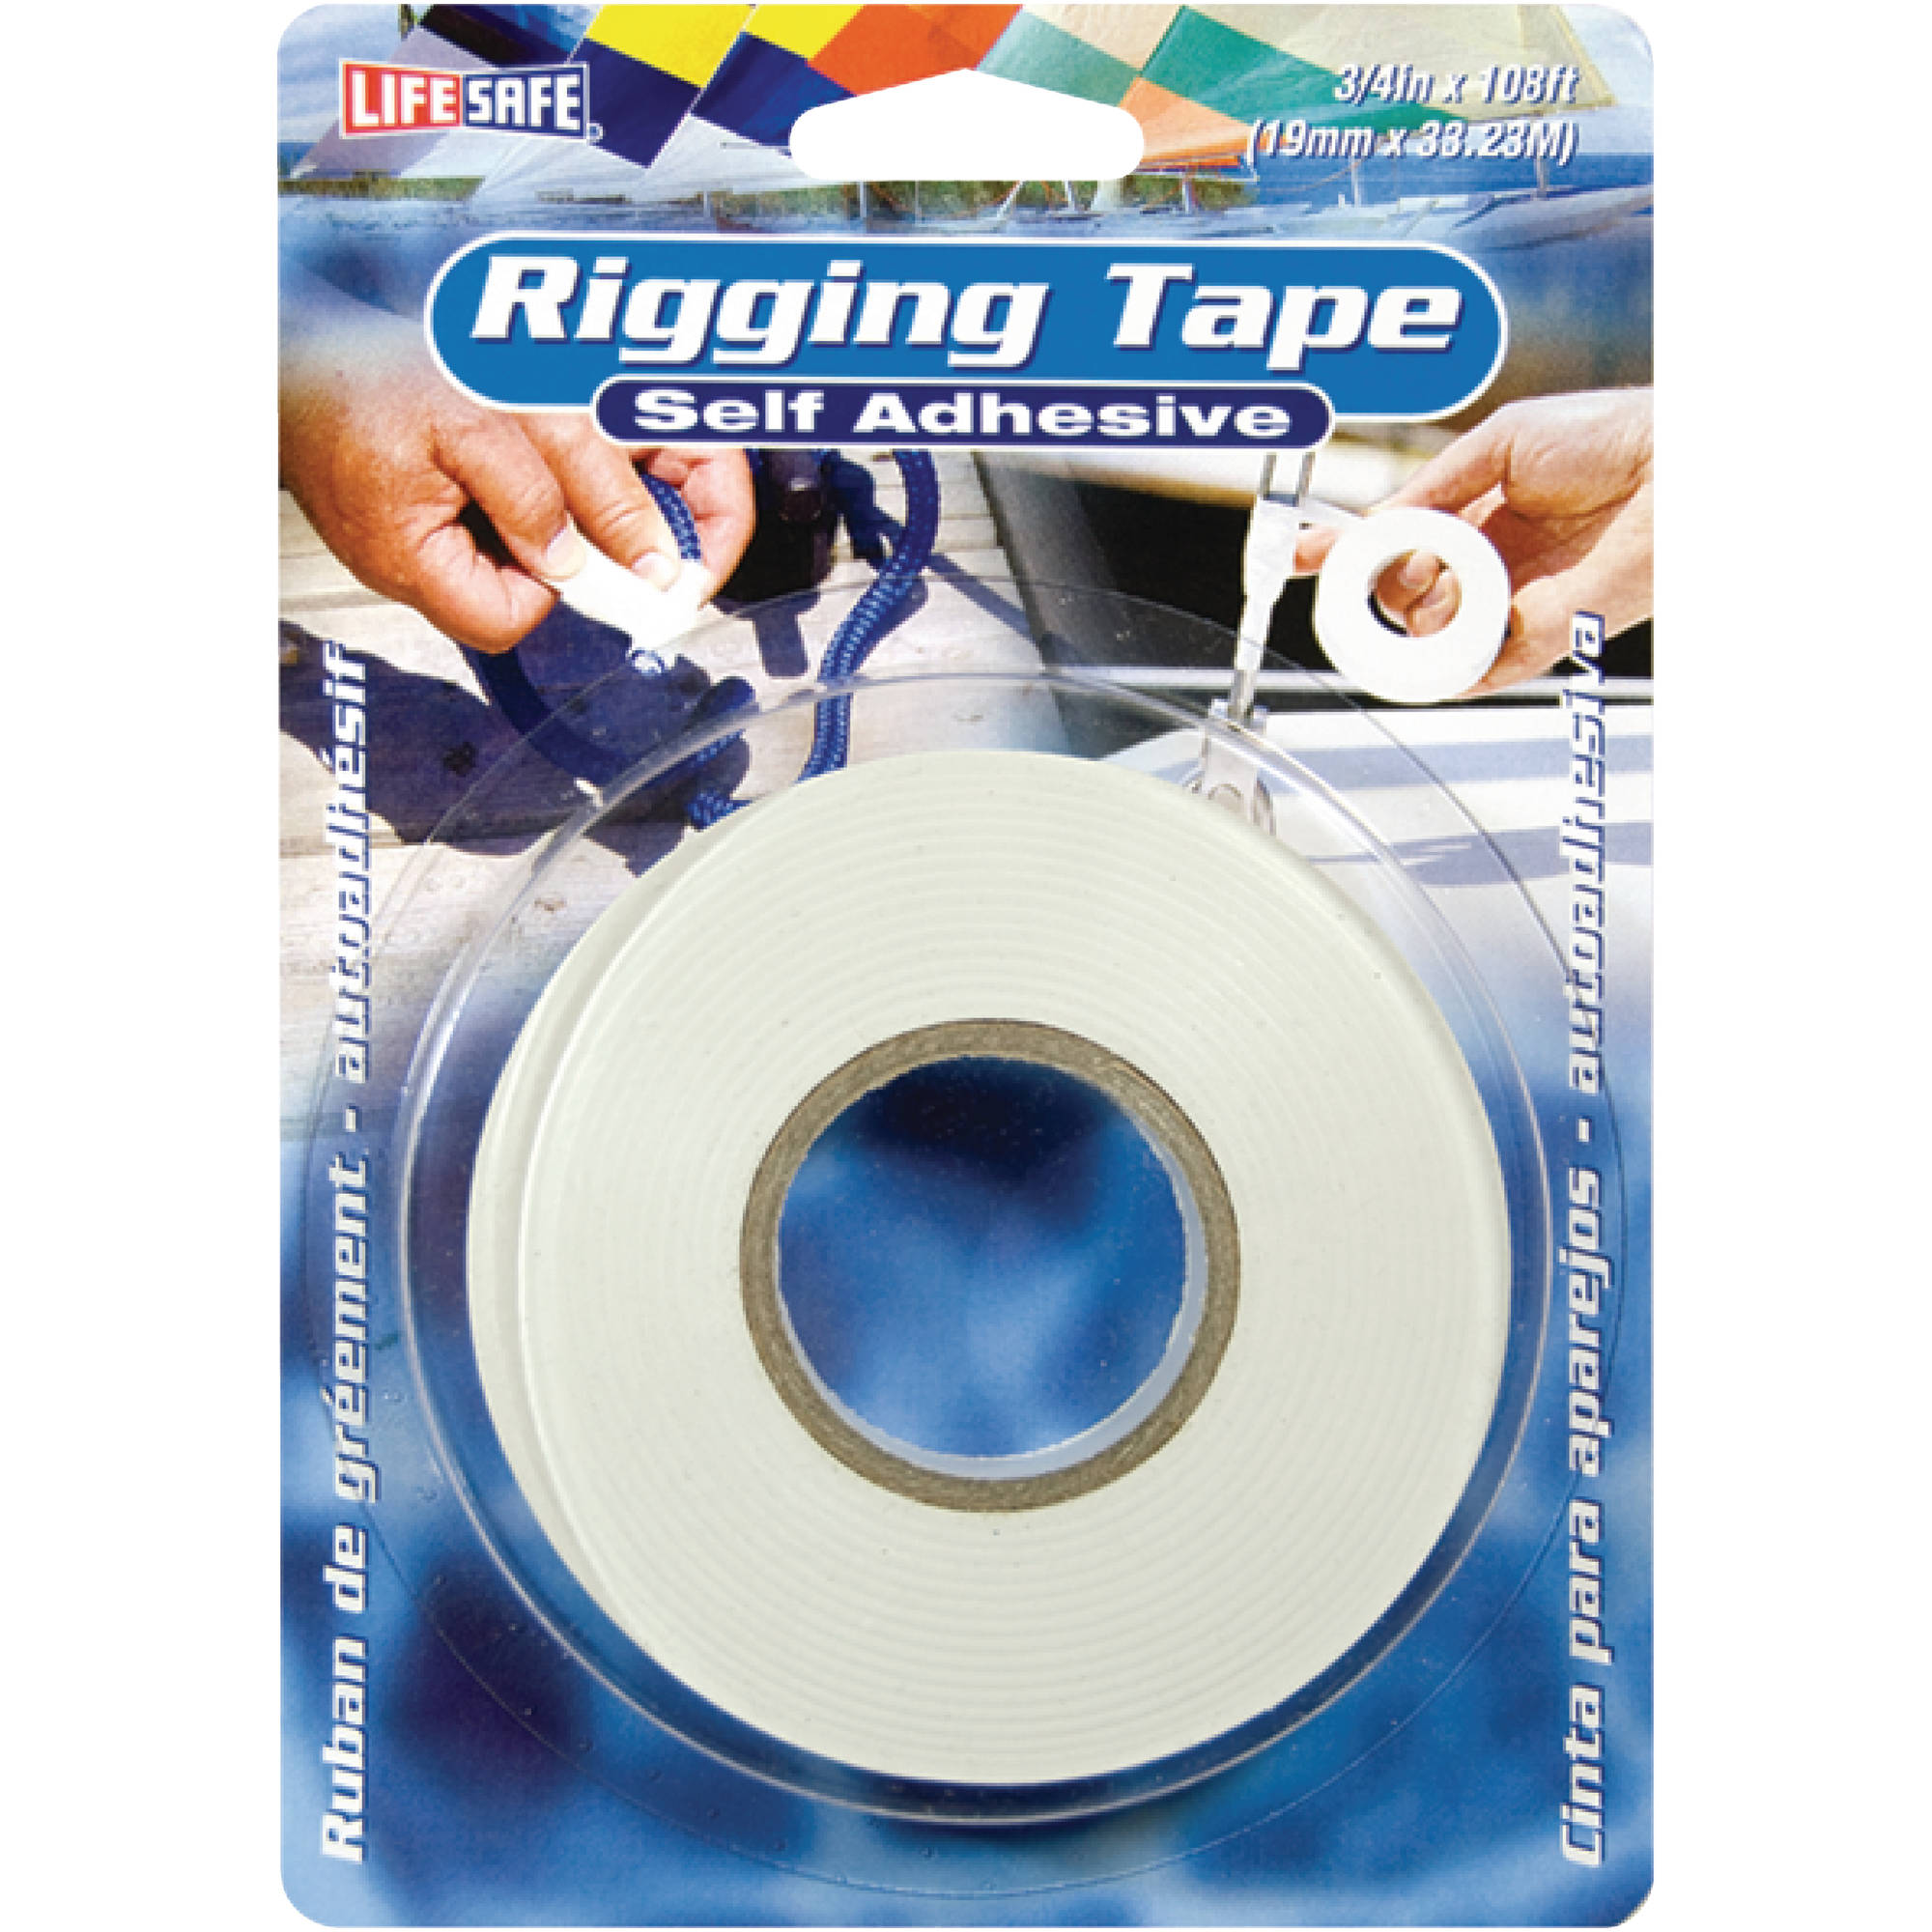 "Life Safe Rigging Tape With Adhesive 3/4"" x 108' White"